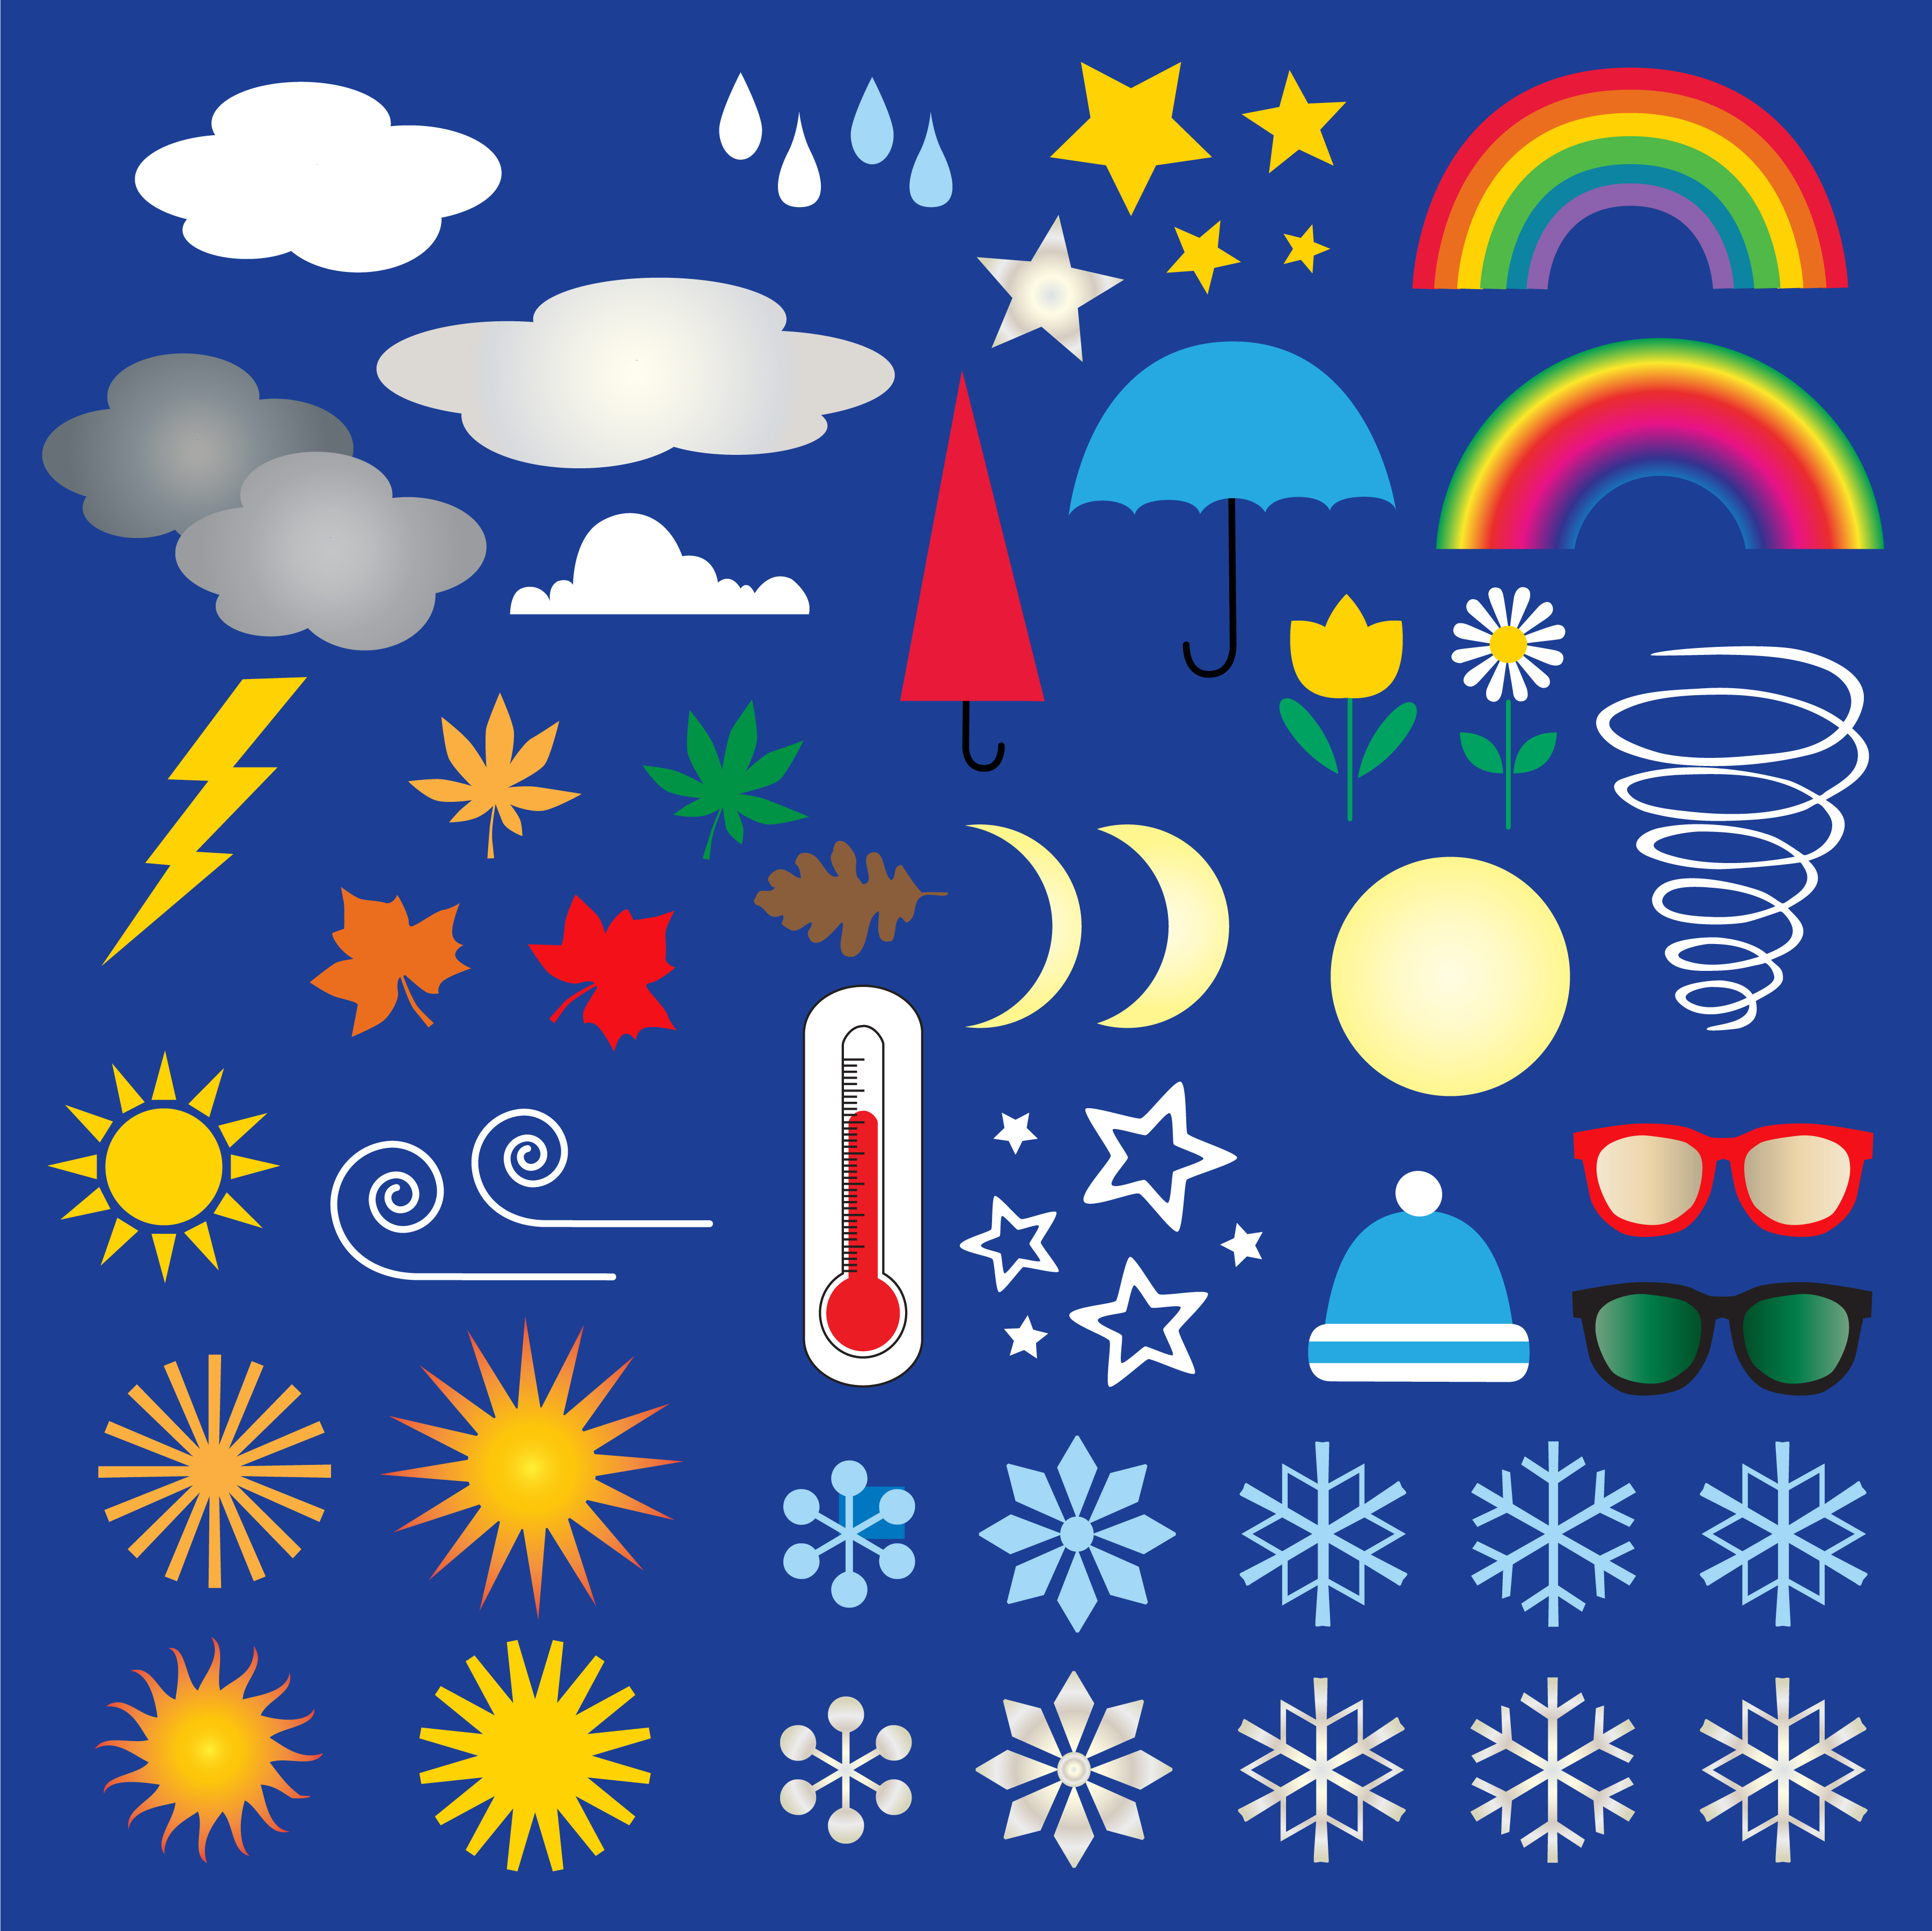 Come Rain or Shine: 20 Packs of Free Weather Clipart and Icons